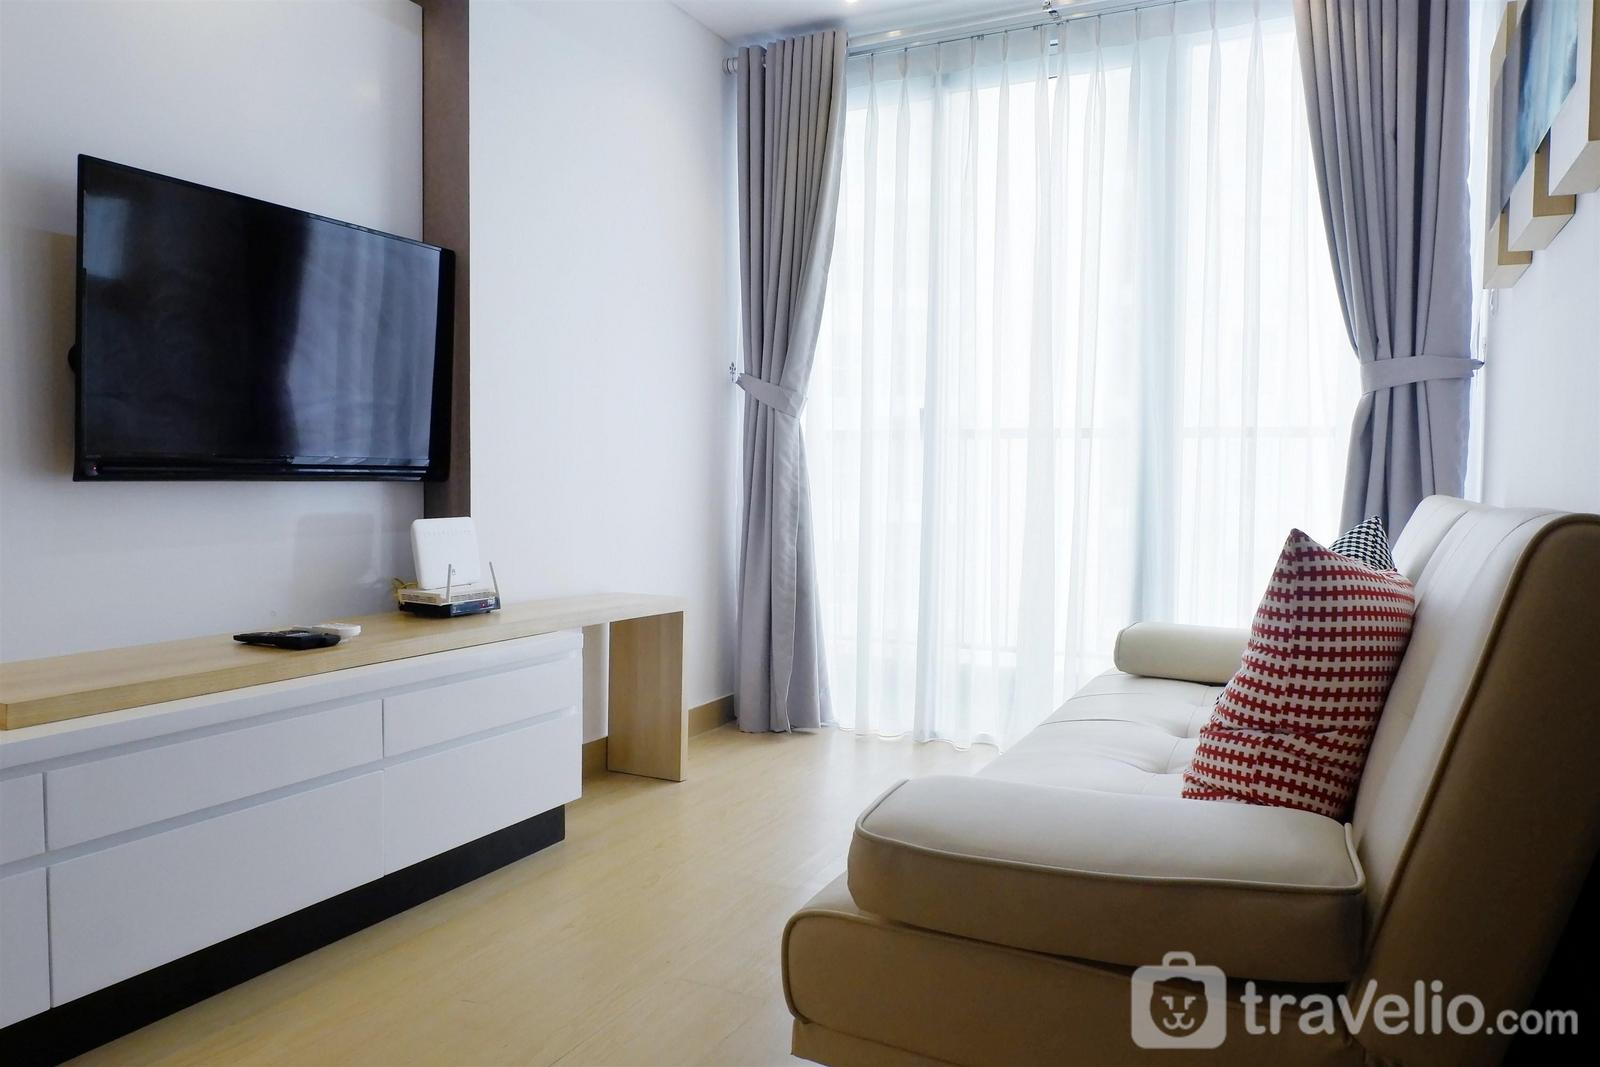 Casa de Parco Apartment - Futuristic 1BR Casa De Parco Apartment near ICE BSD By Travelio